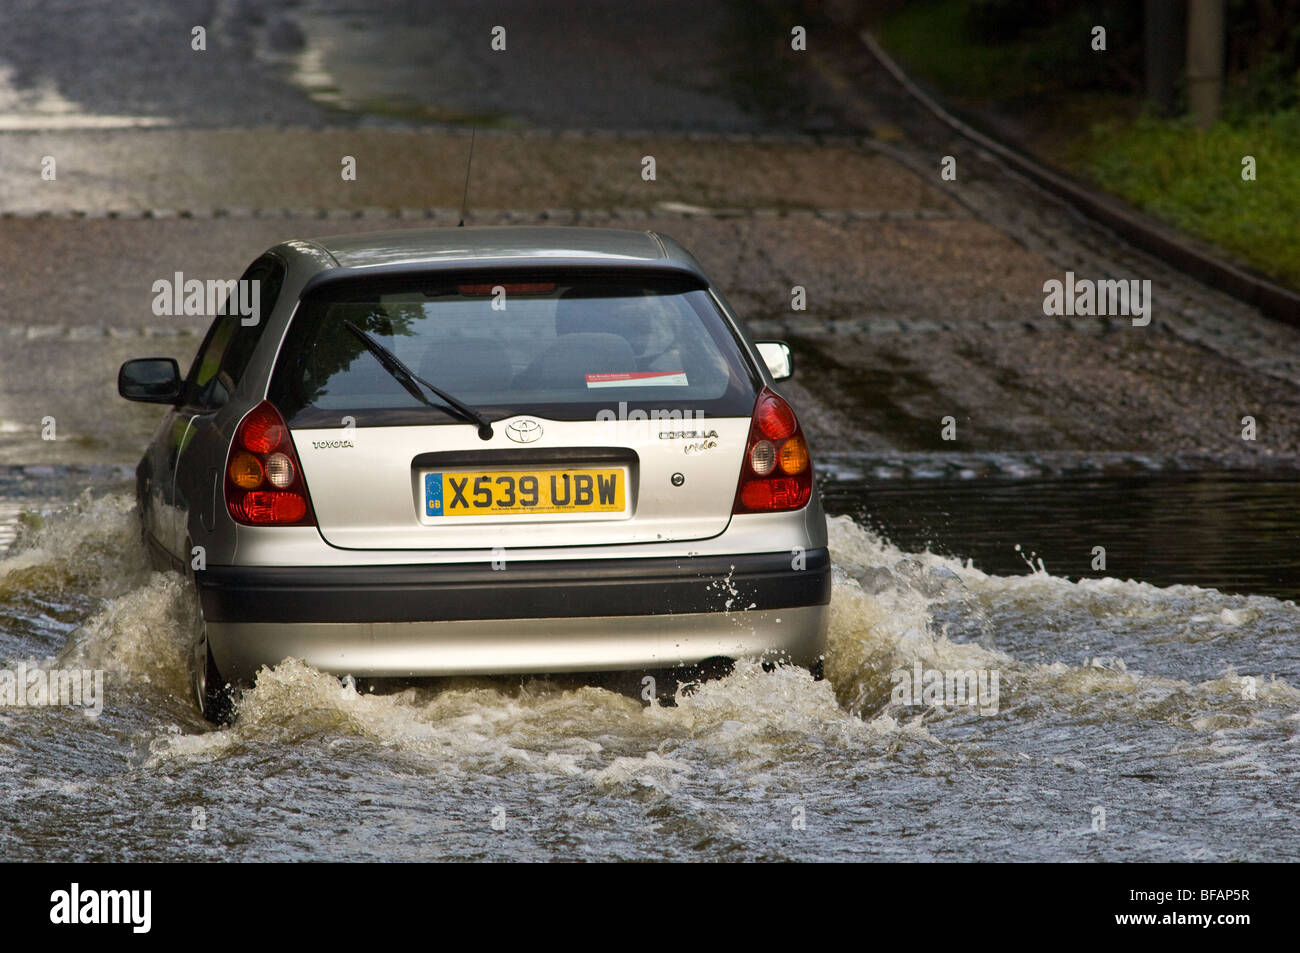 Motor vehicles driving through a flooded weir - Stock Image